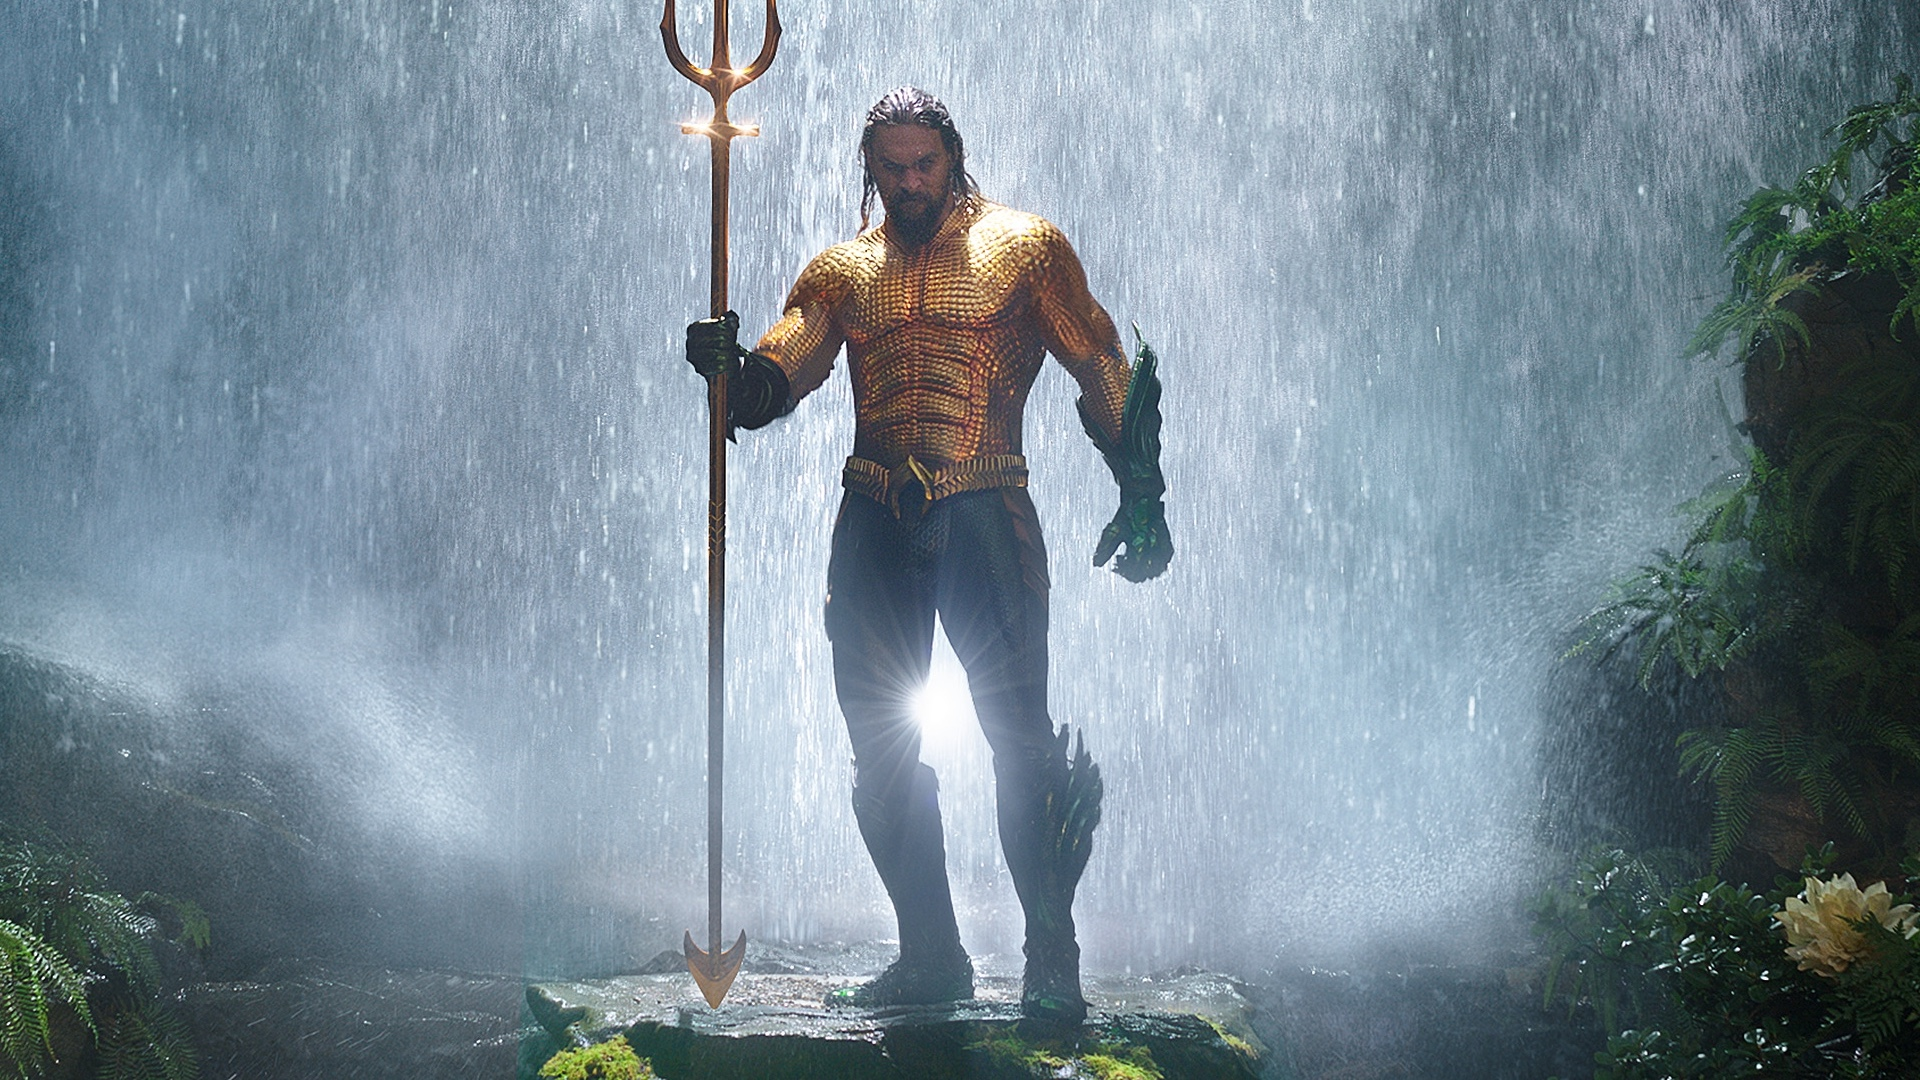 Aquaman': Director James Wan Explains Why There Hasn't Been a Trailer Yet